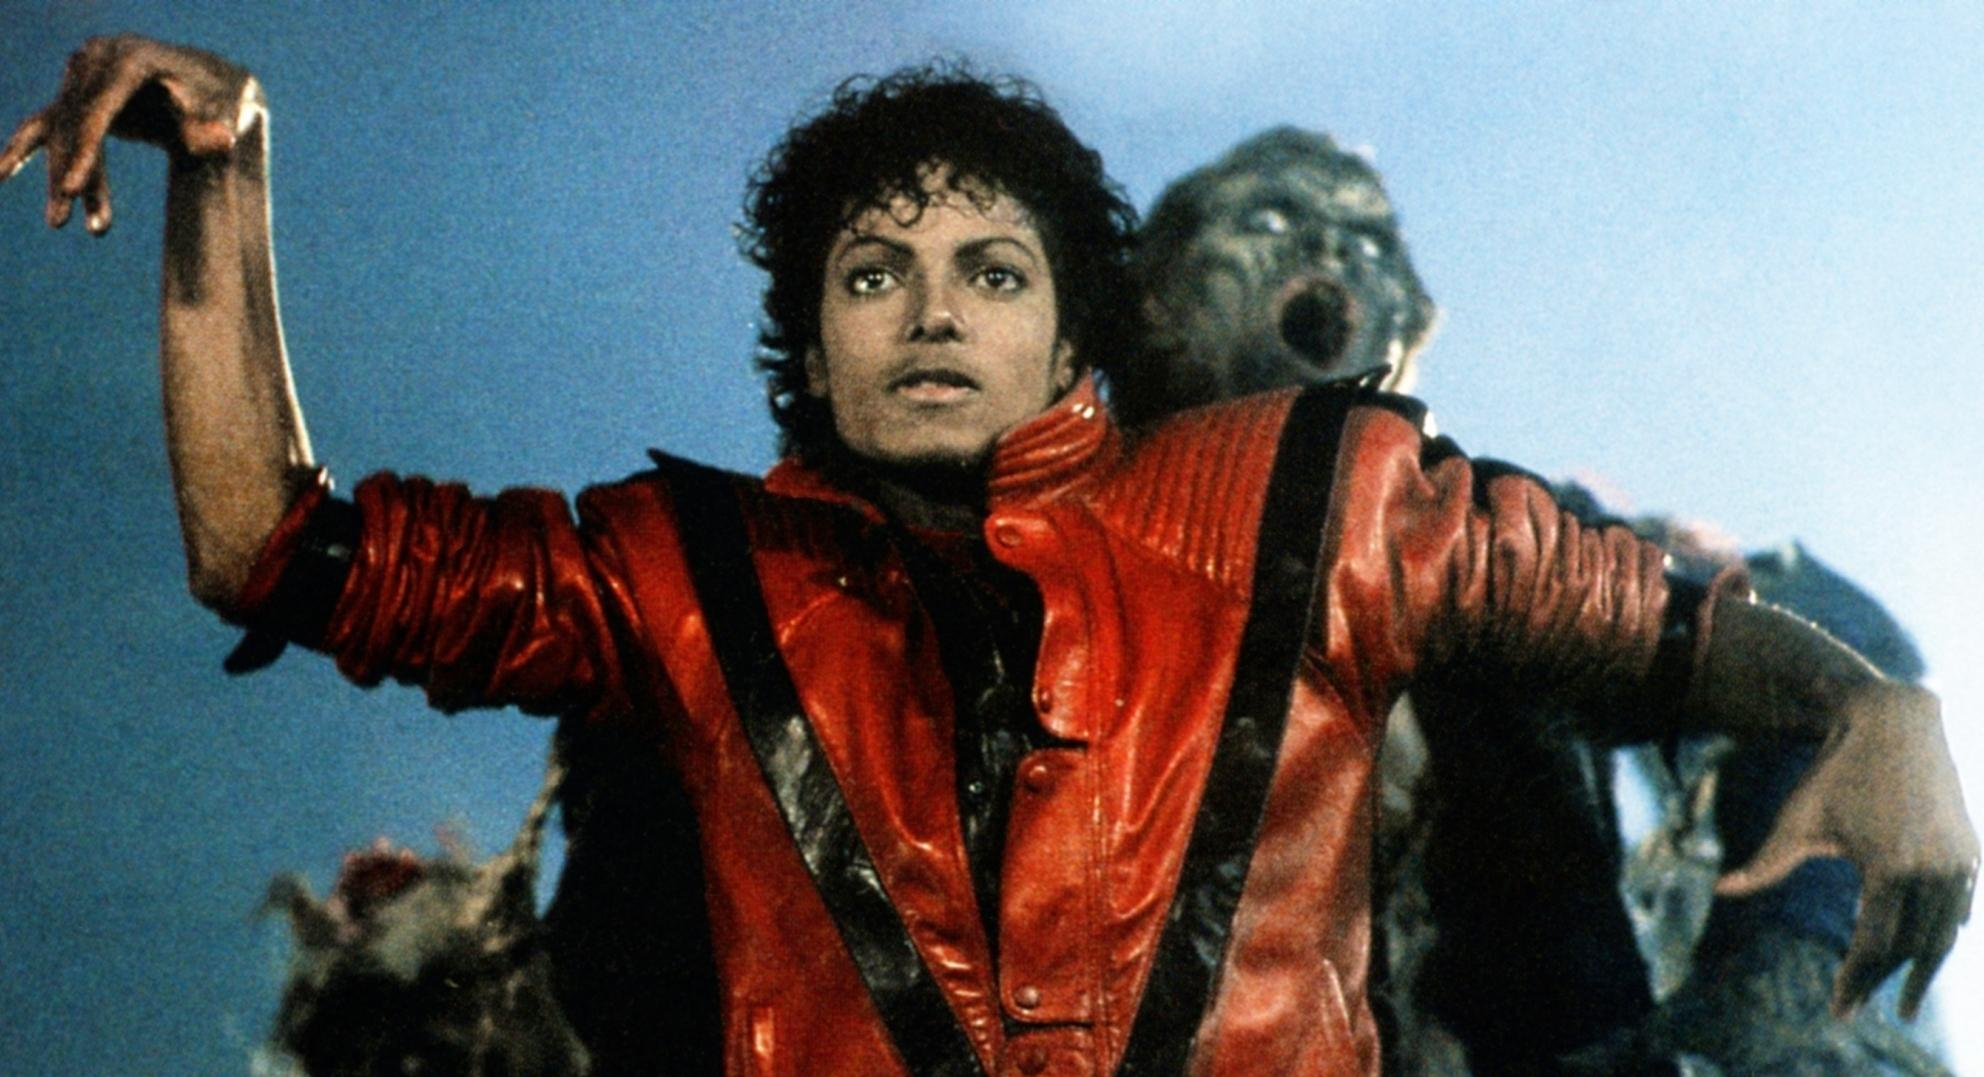 Thriller di Michael Jackson torna al cinema in 3D